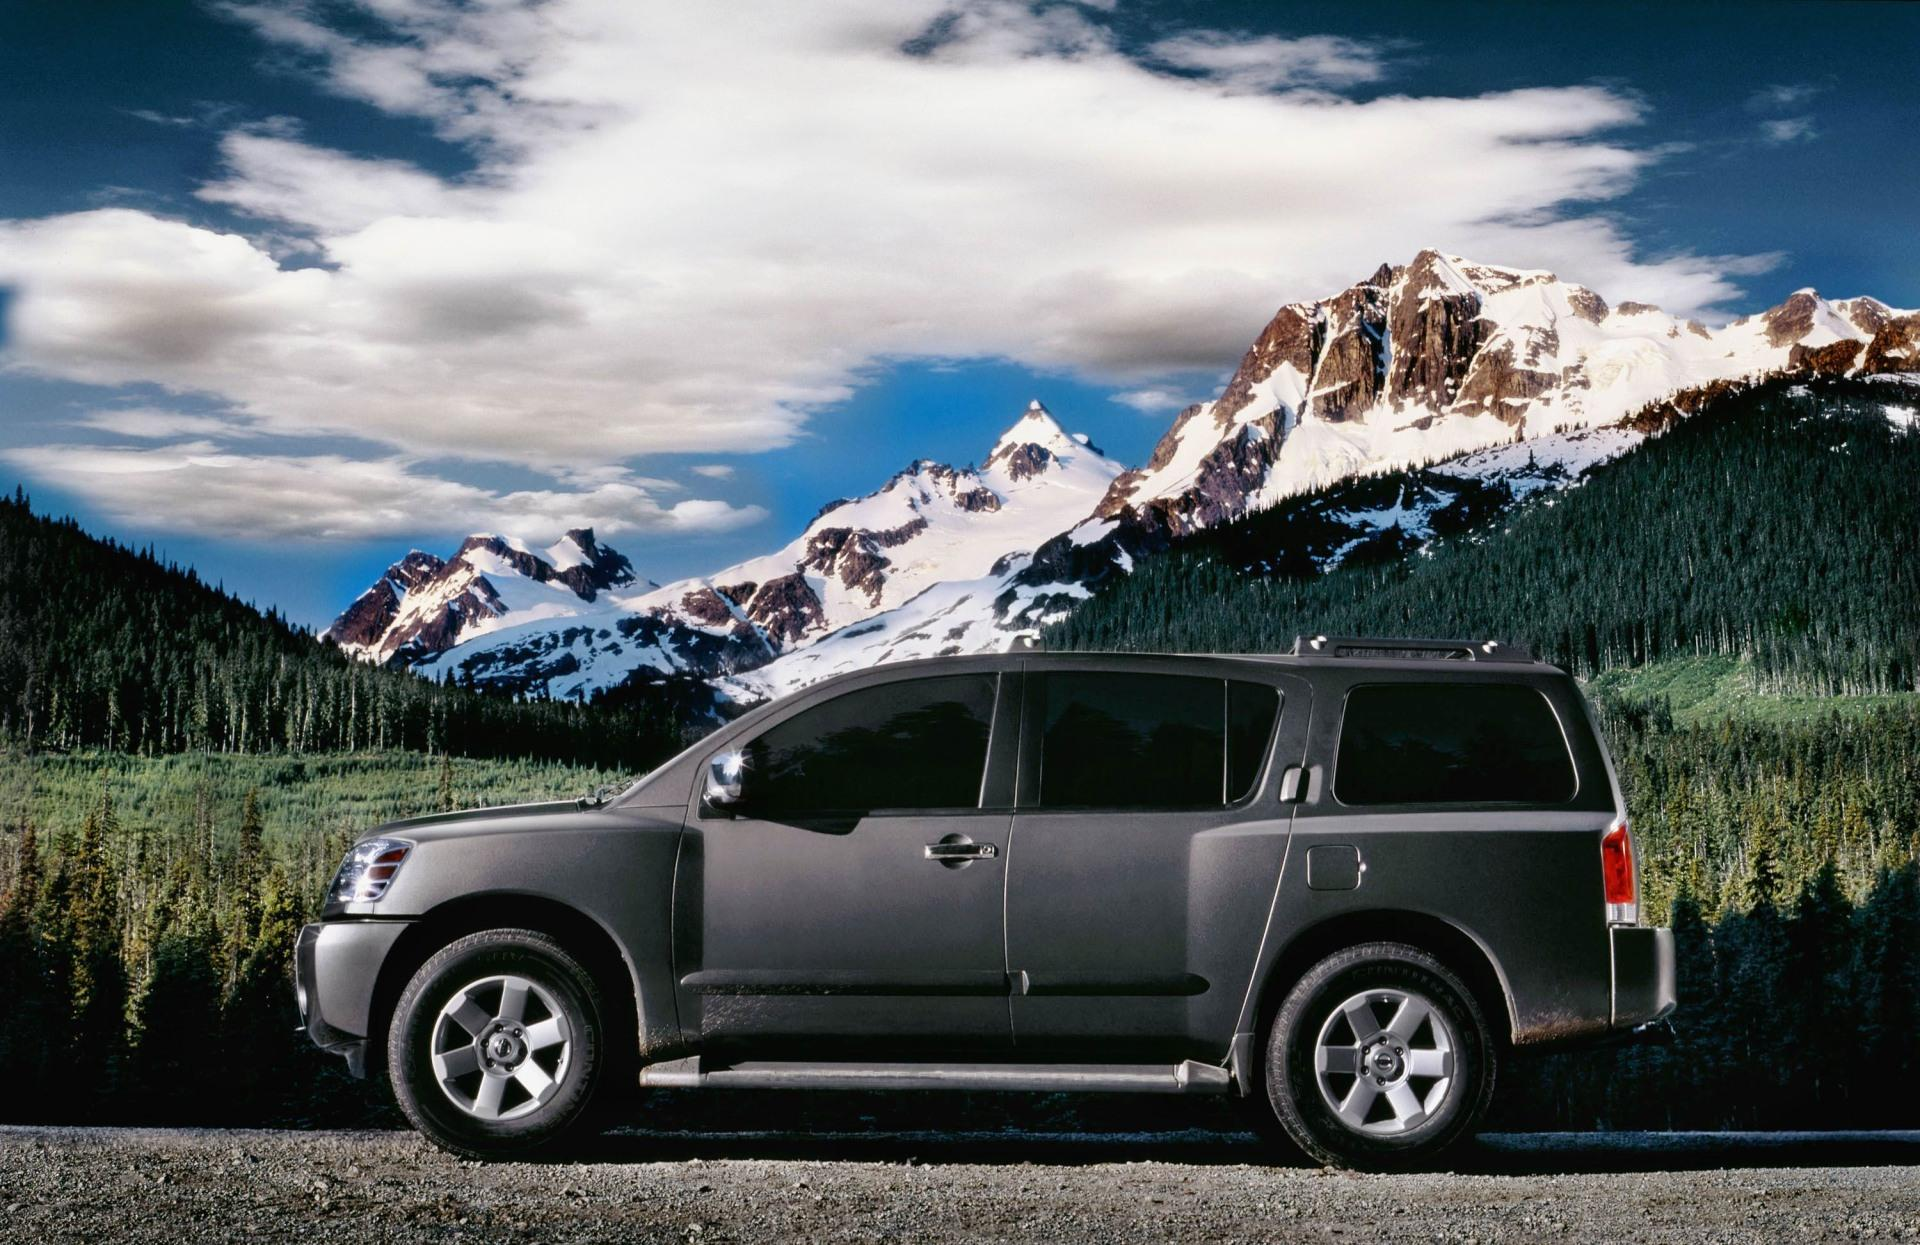 2007 nissan armada pictures history value research news conceptcarz com